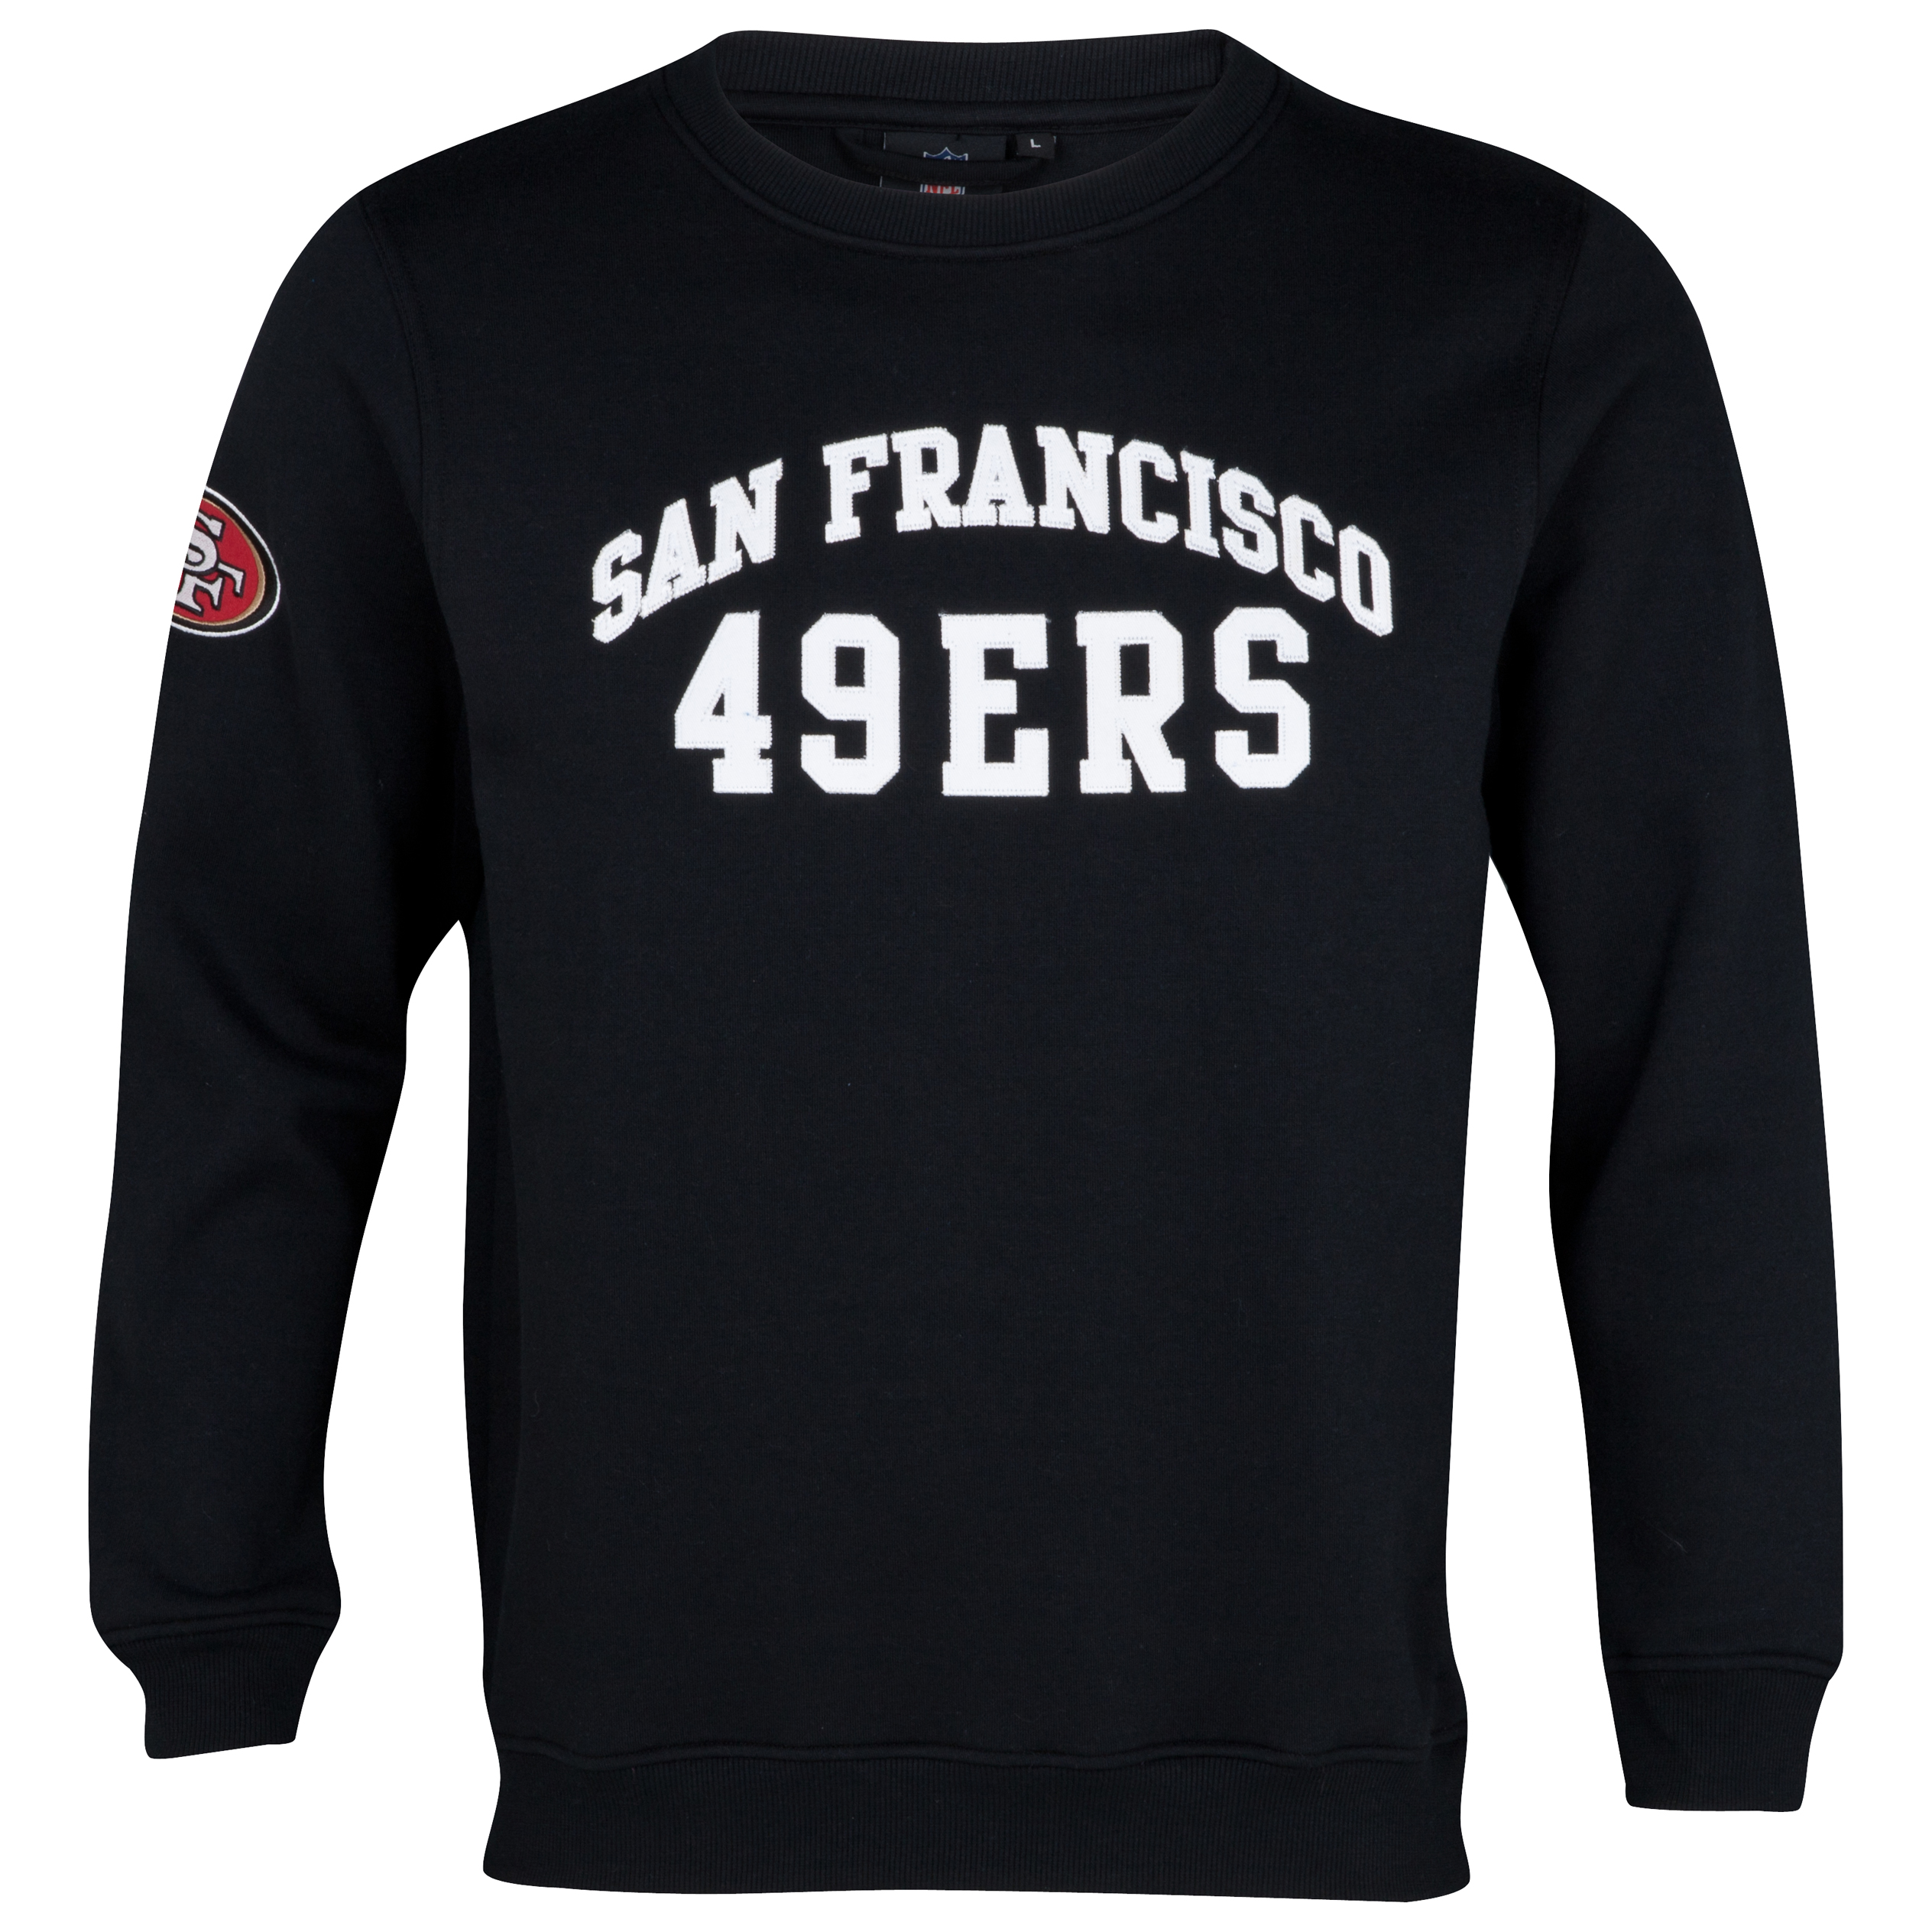 San Francisco 49ers Collins Crew Neck Sweater - Black